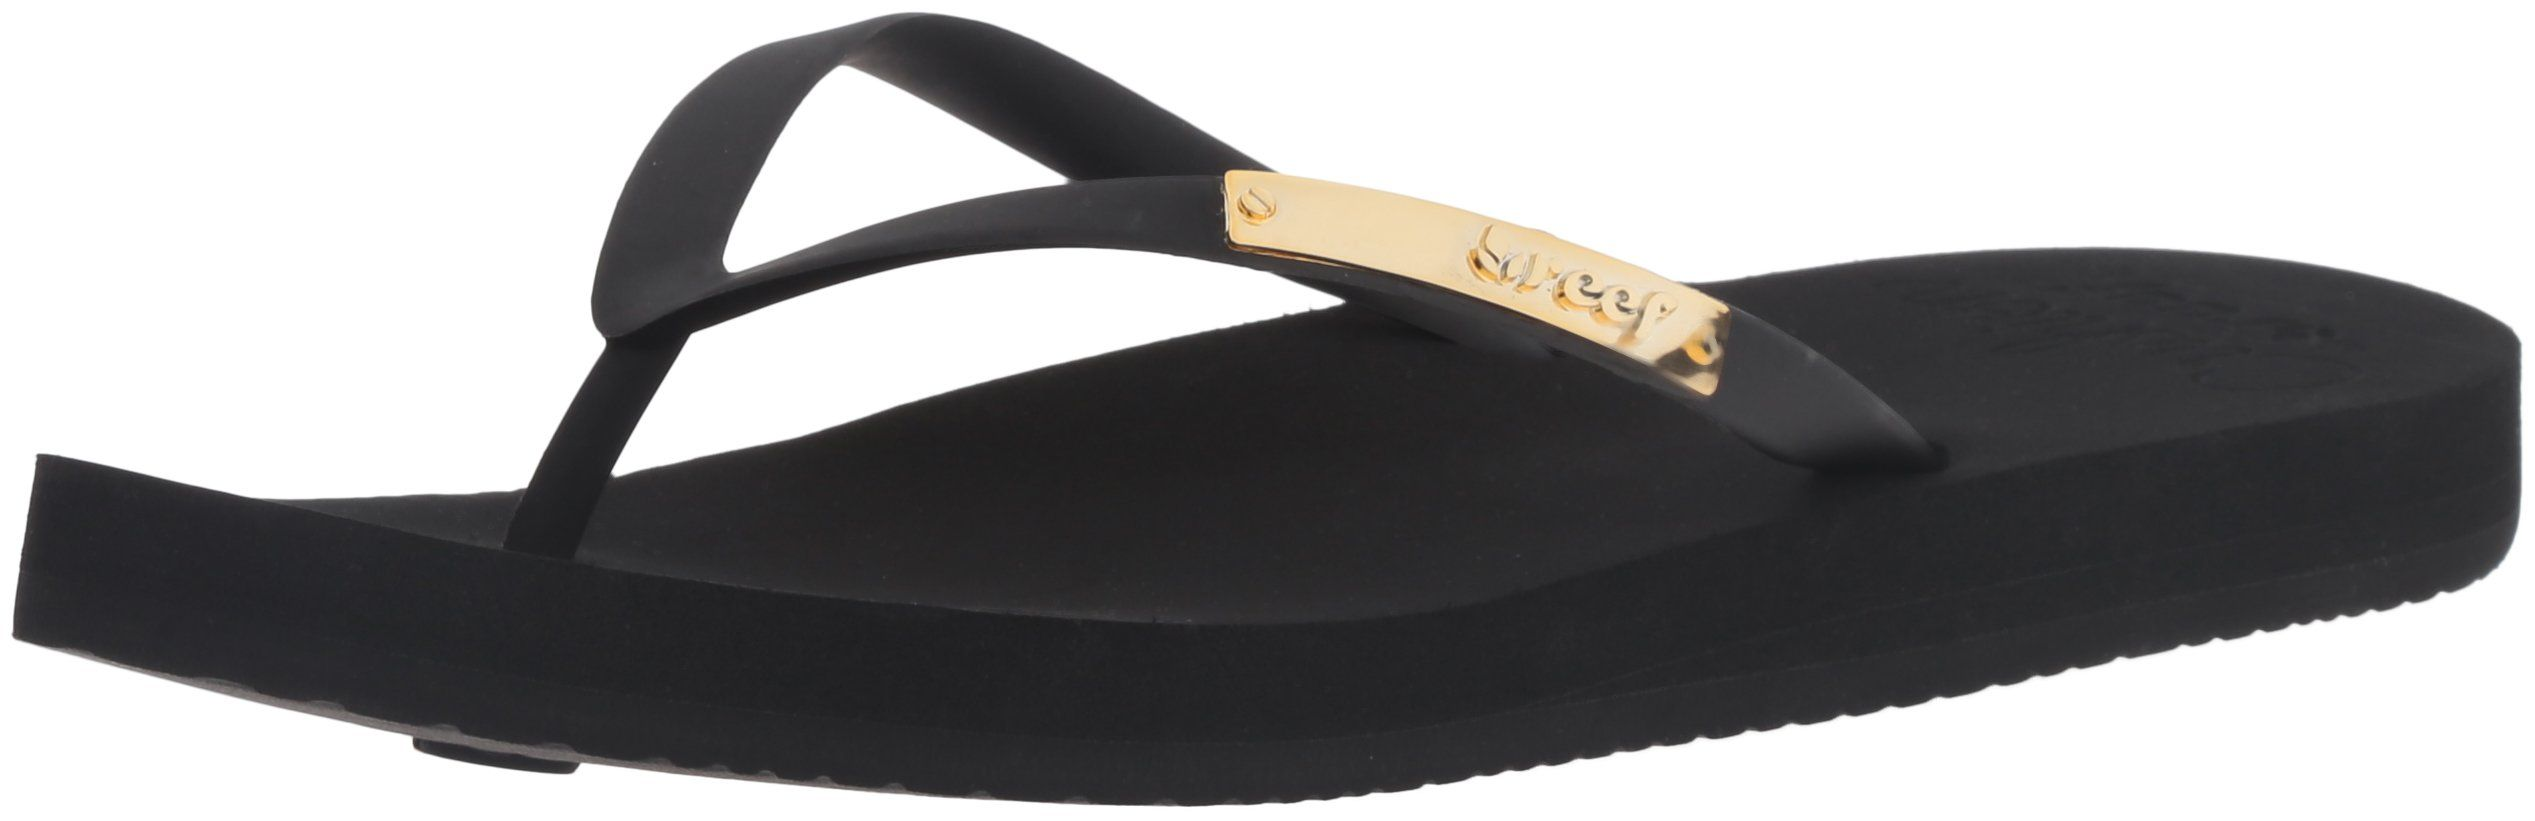 5d2ef385ddc5 Reef Women s Cushion Glam Flip Flop